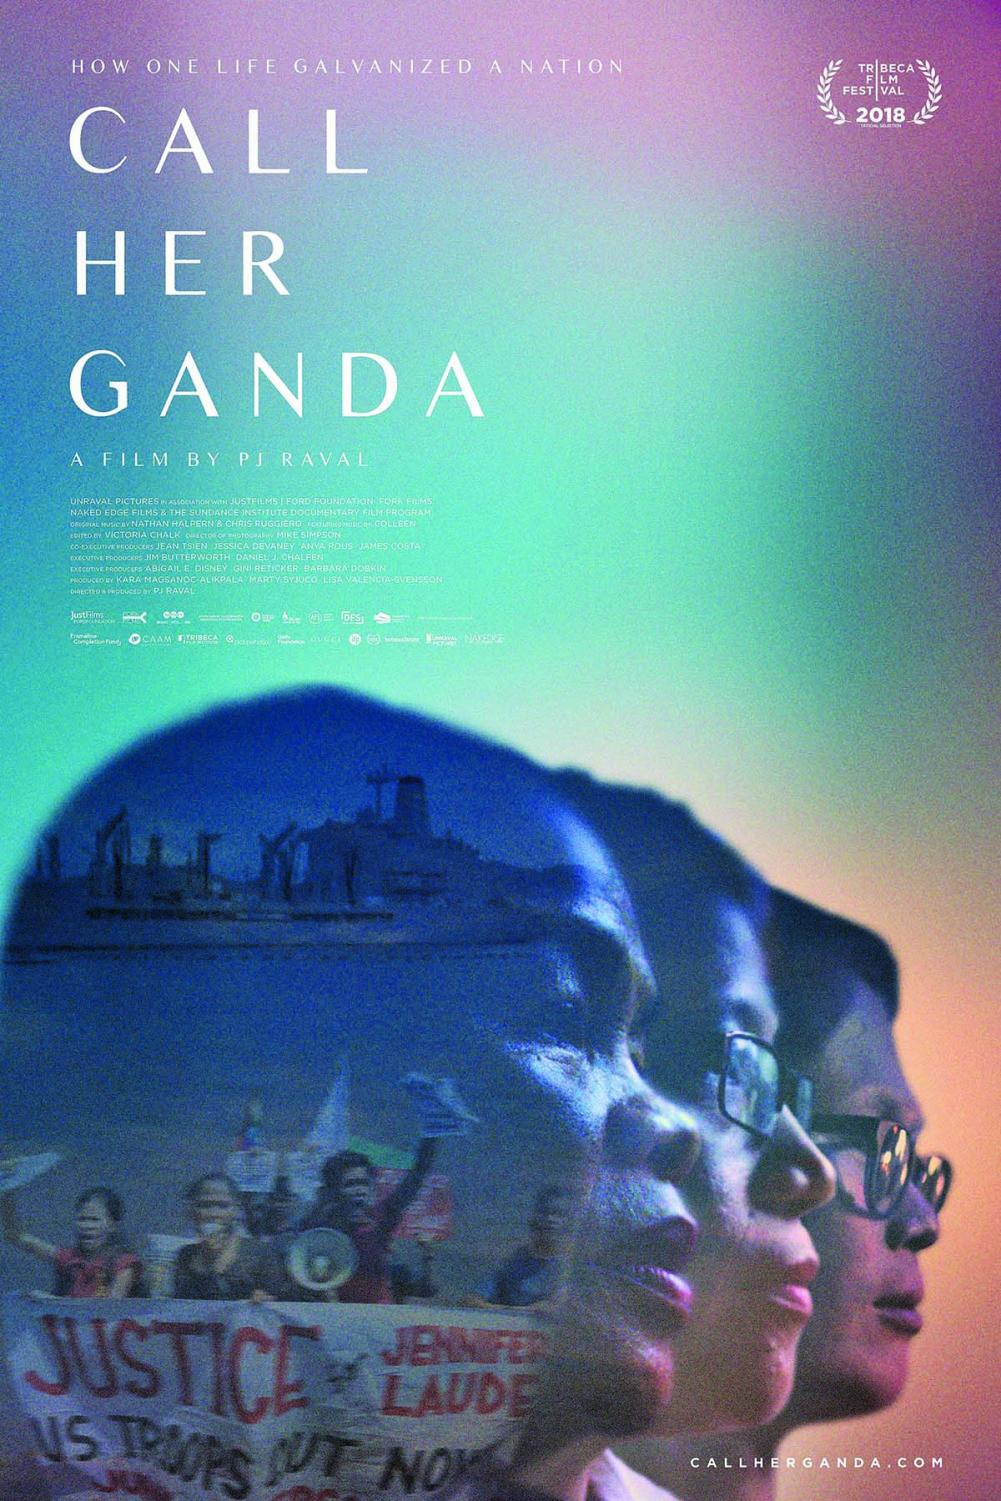 The film played at the Tribeca Film Festival in April.